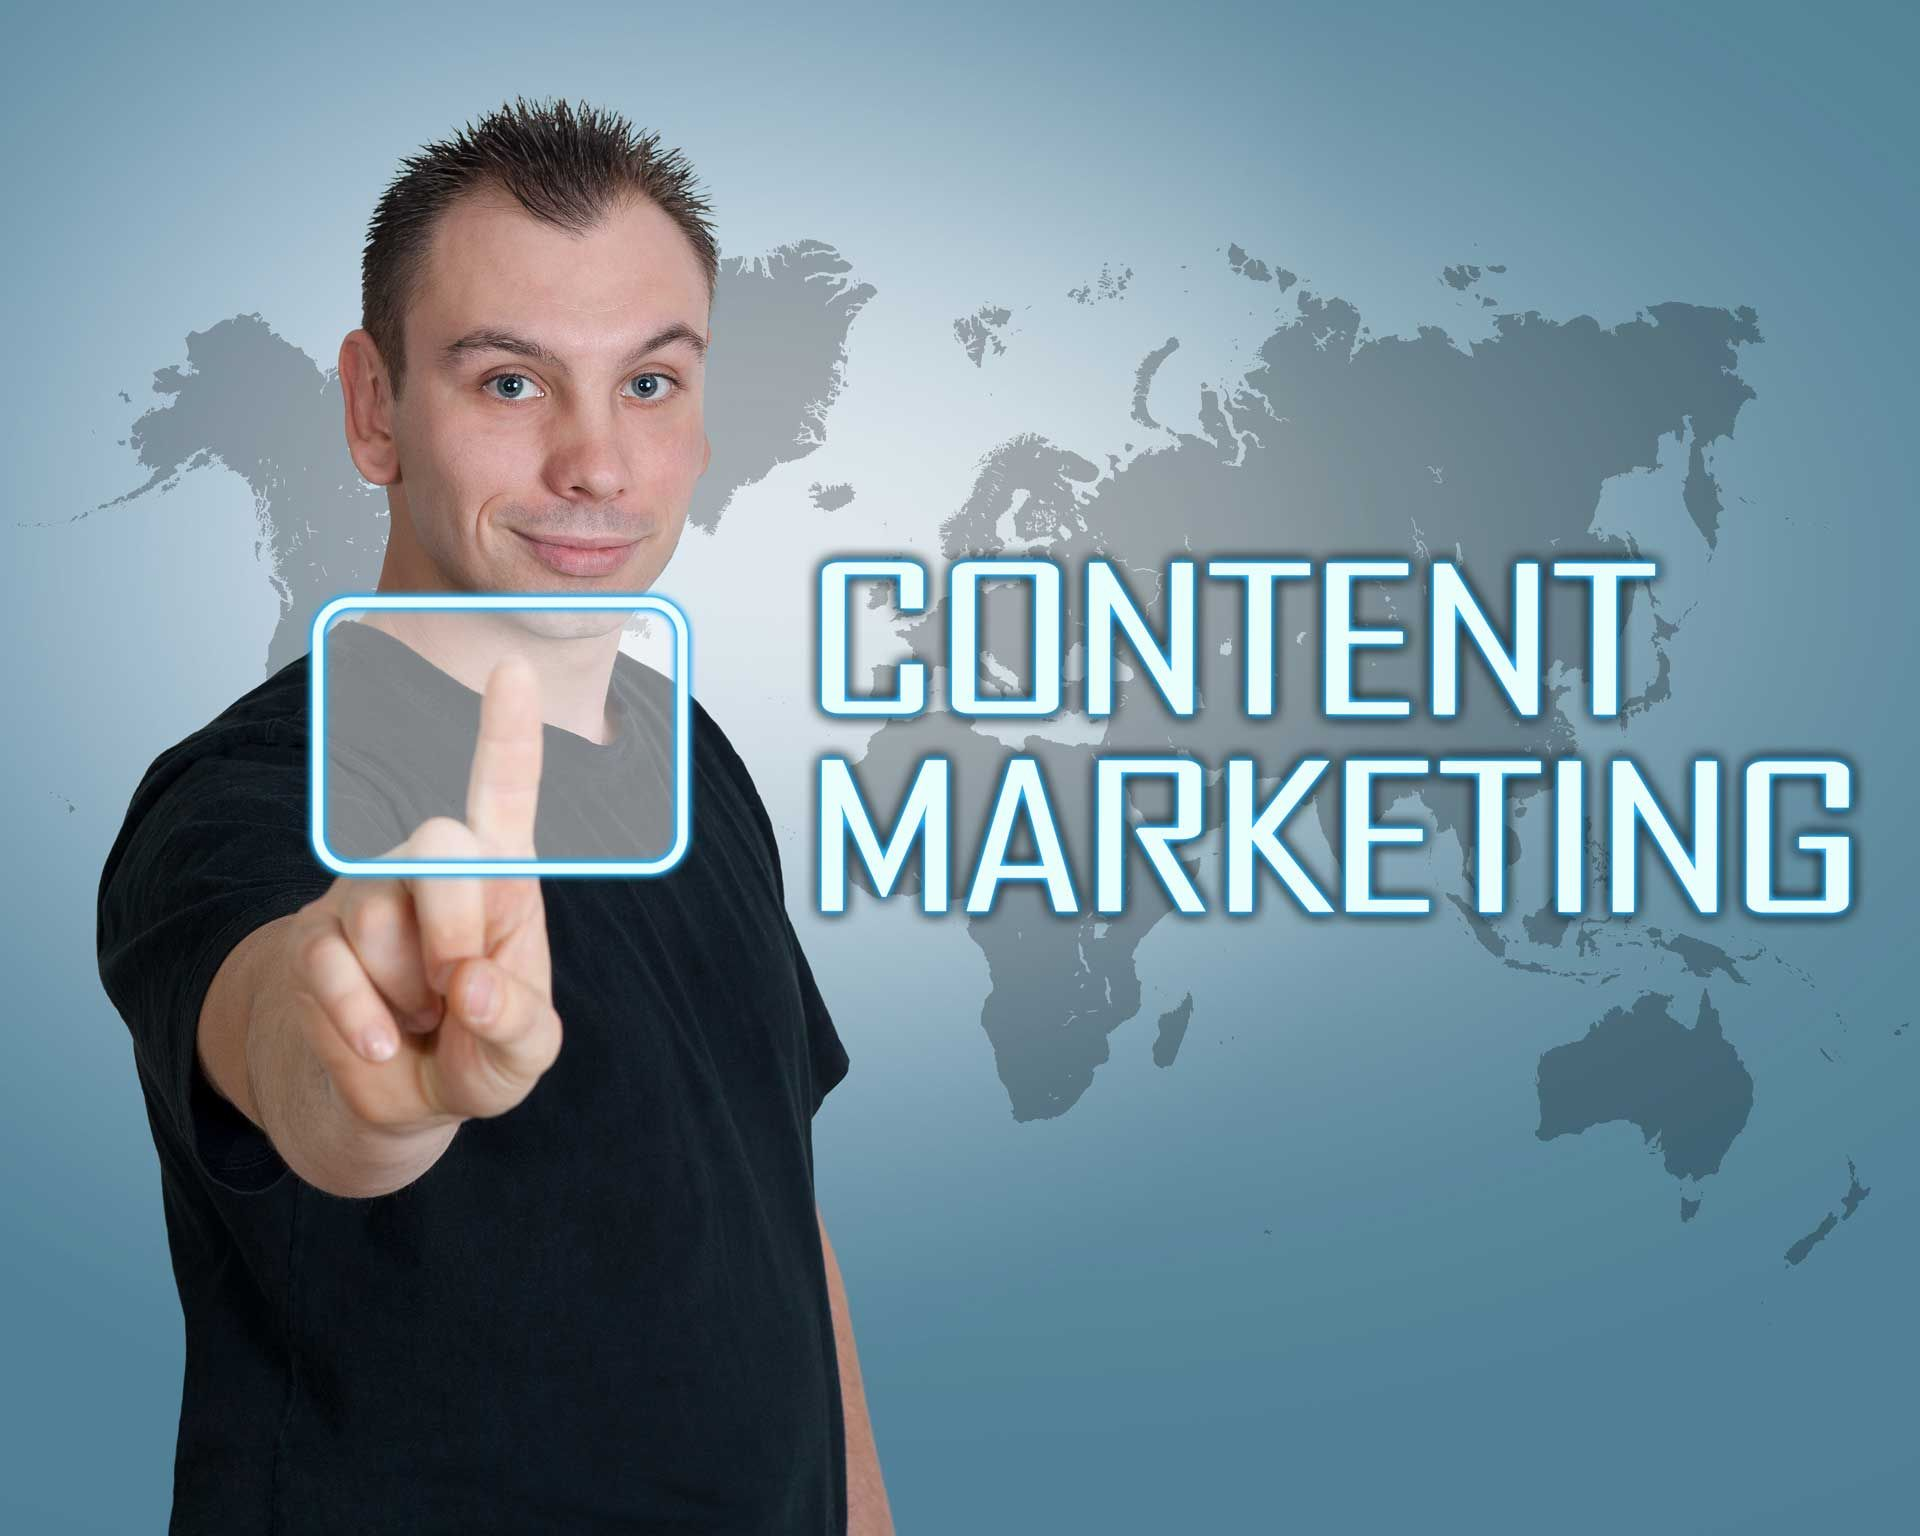 The path to content marketing Online business